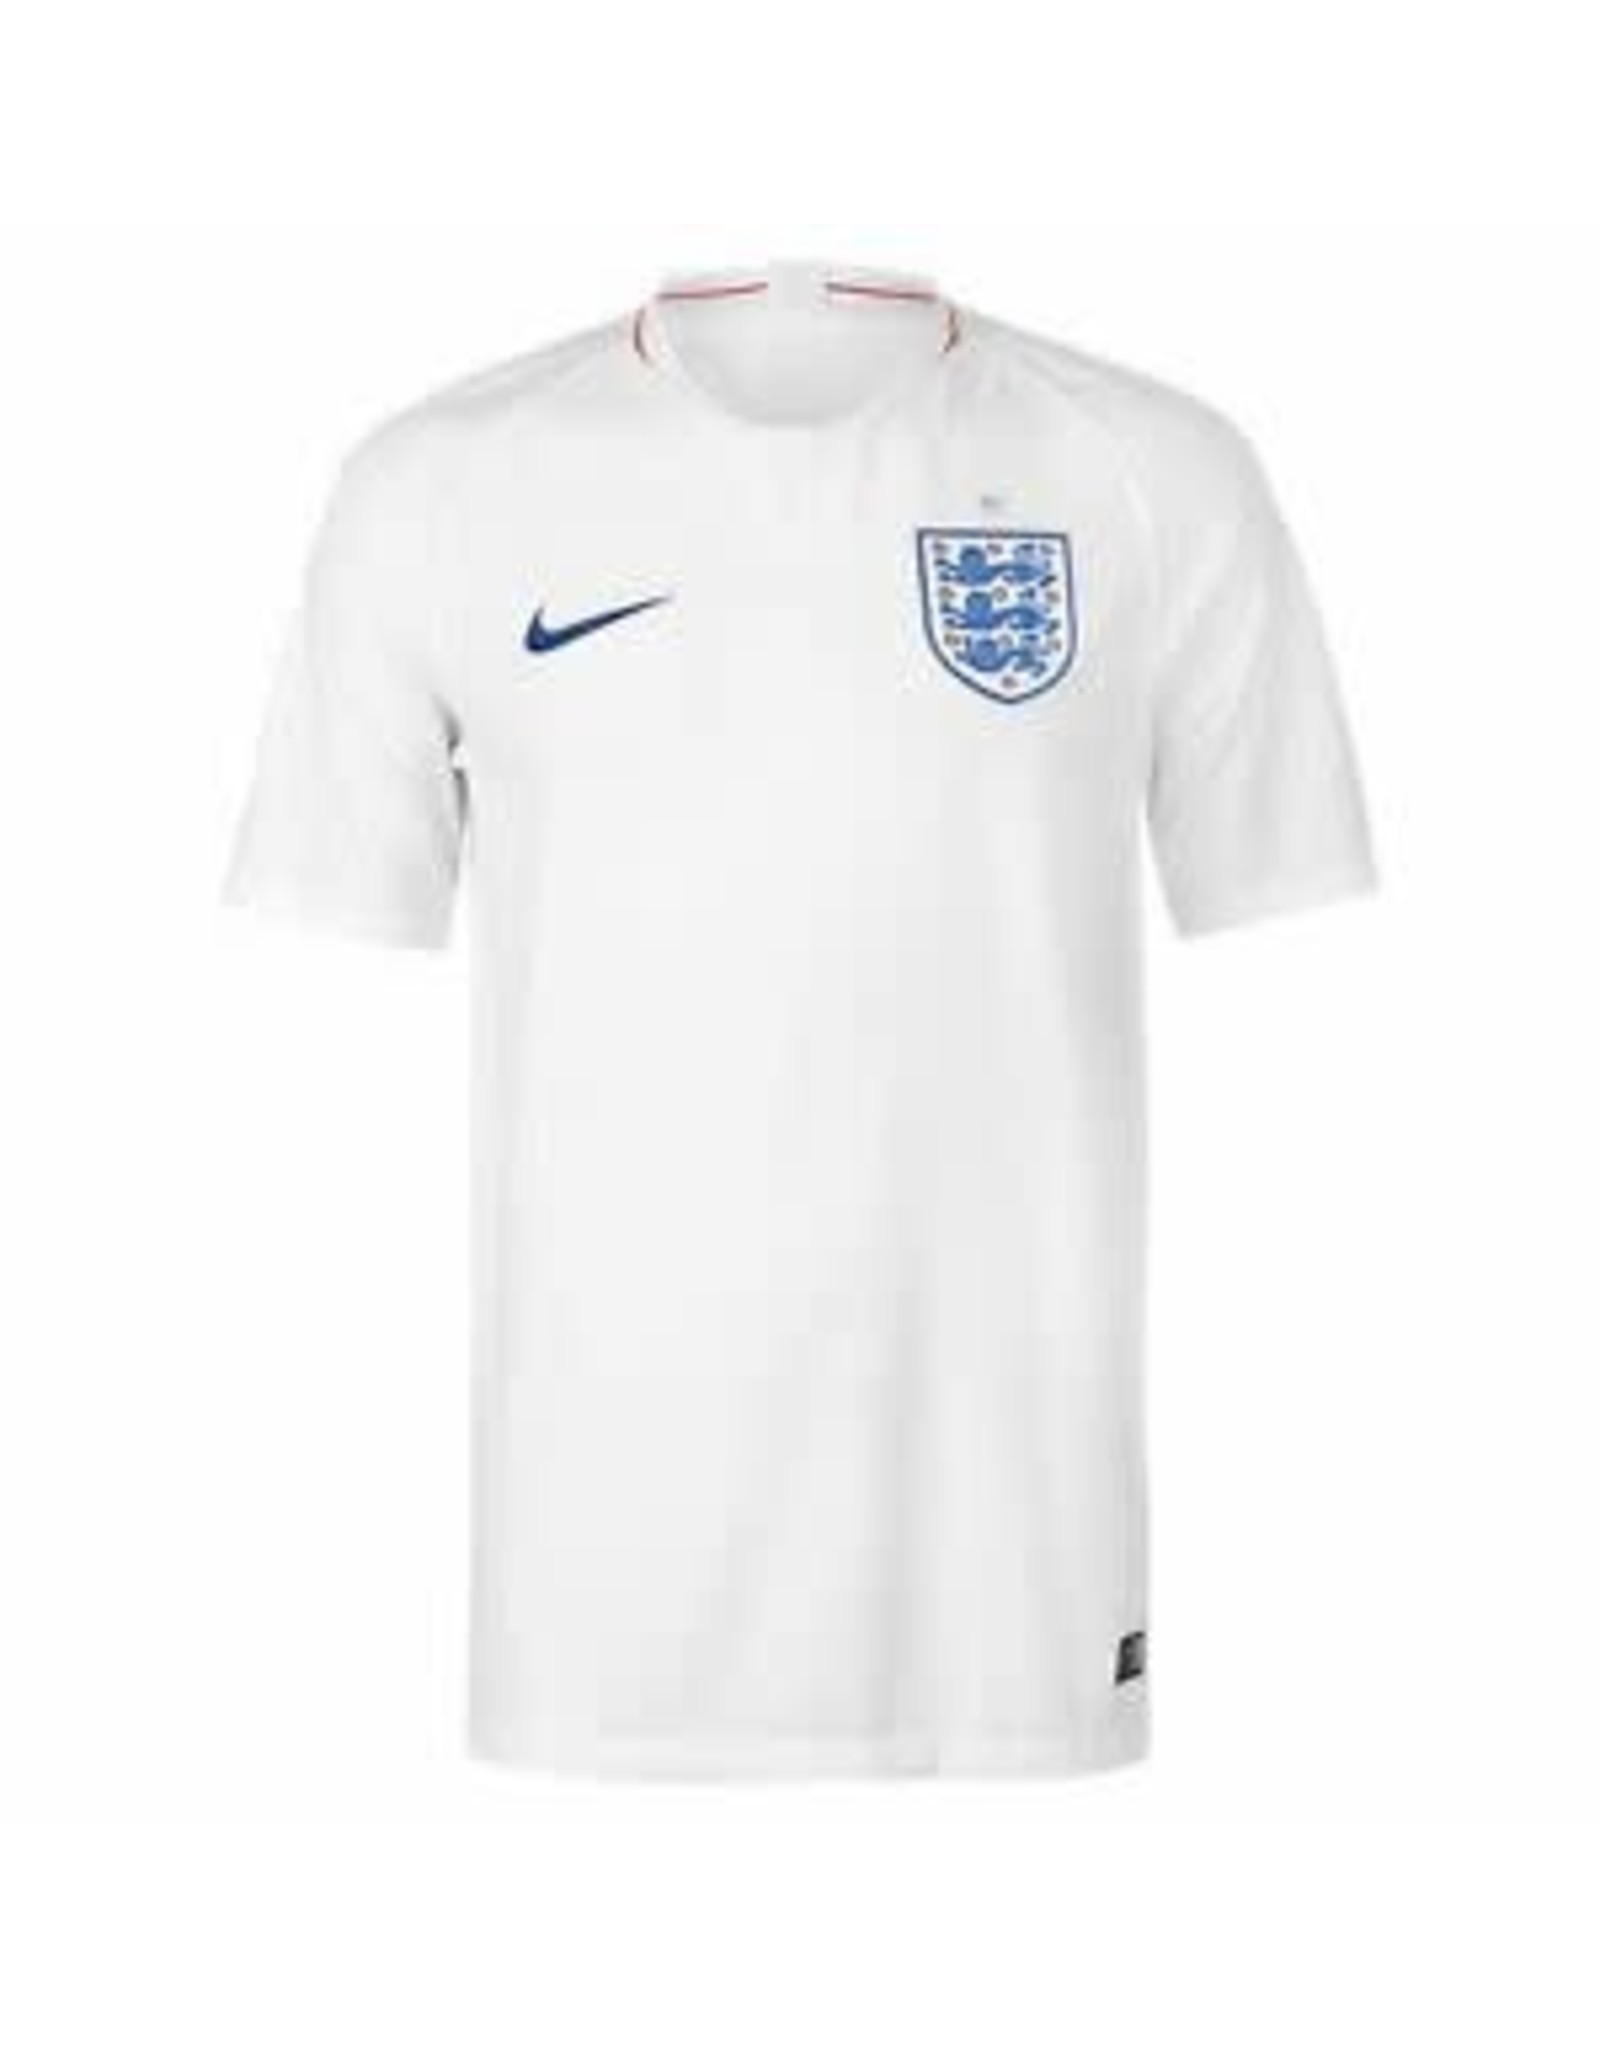 Nike Nike Men's England Home Jersey (White)